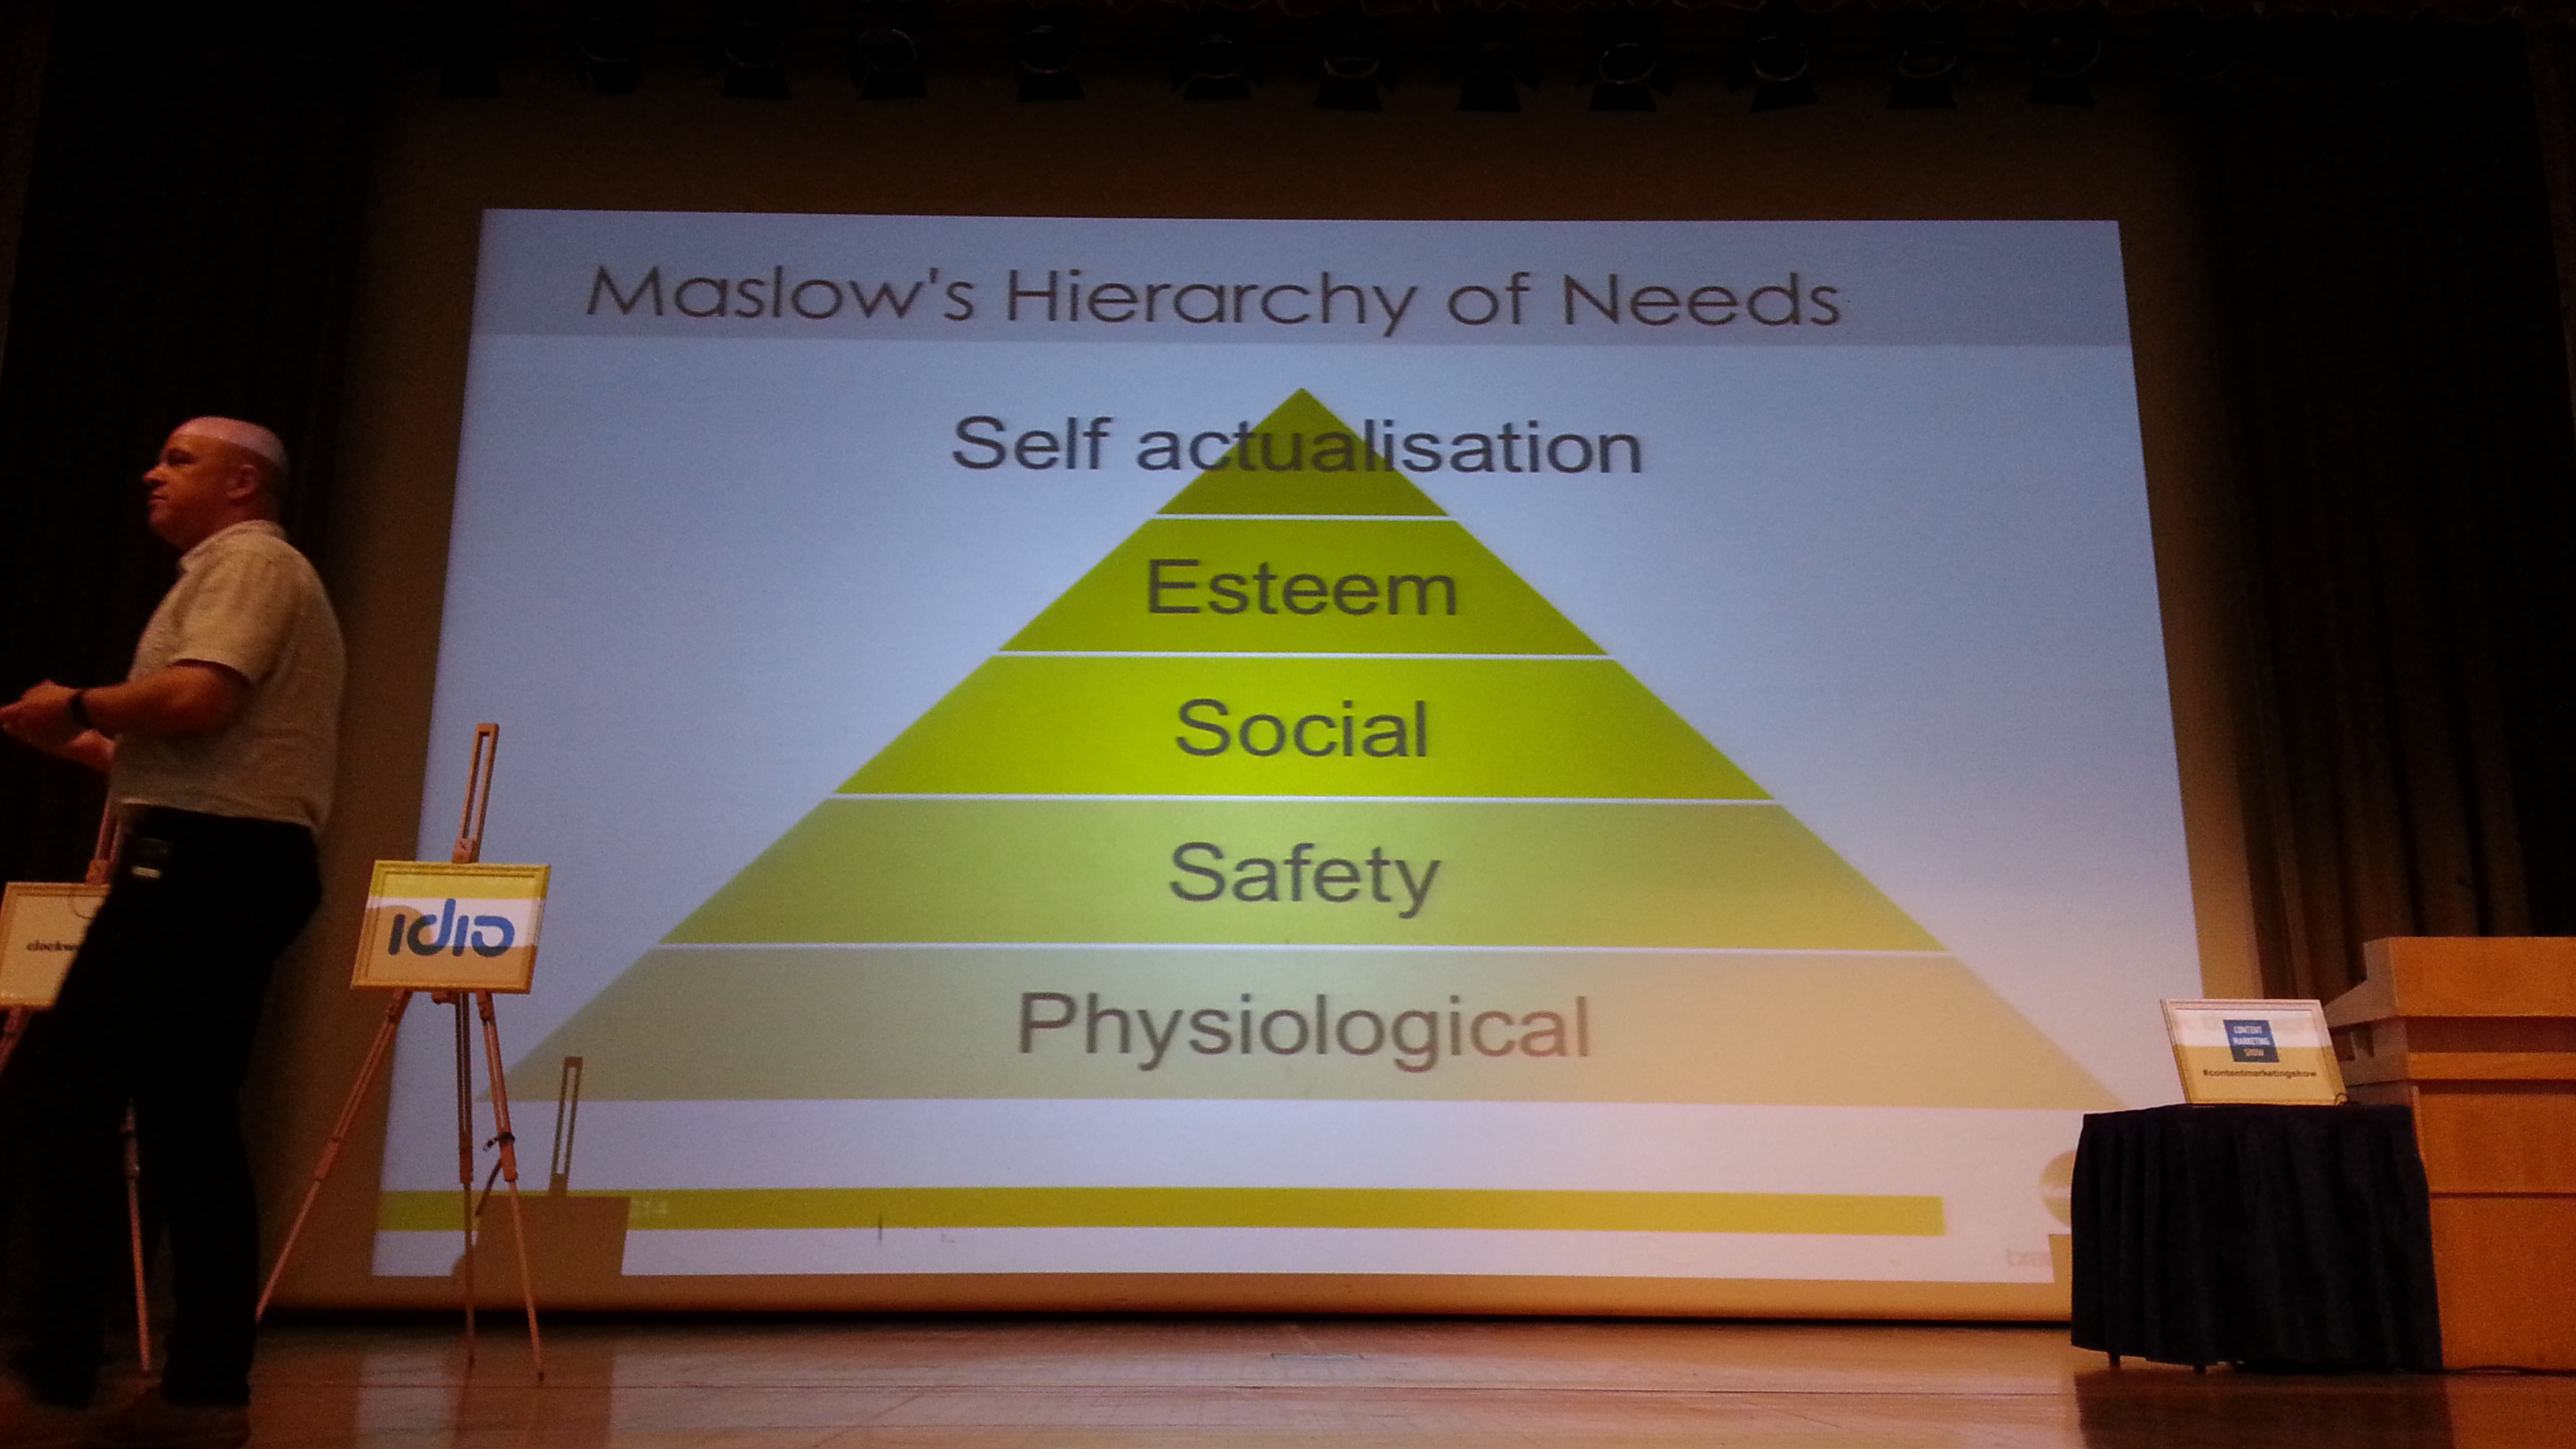 Maslow's Hierachy